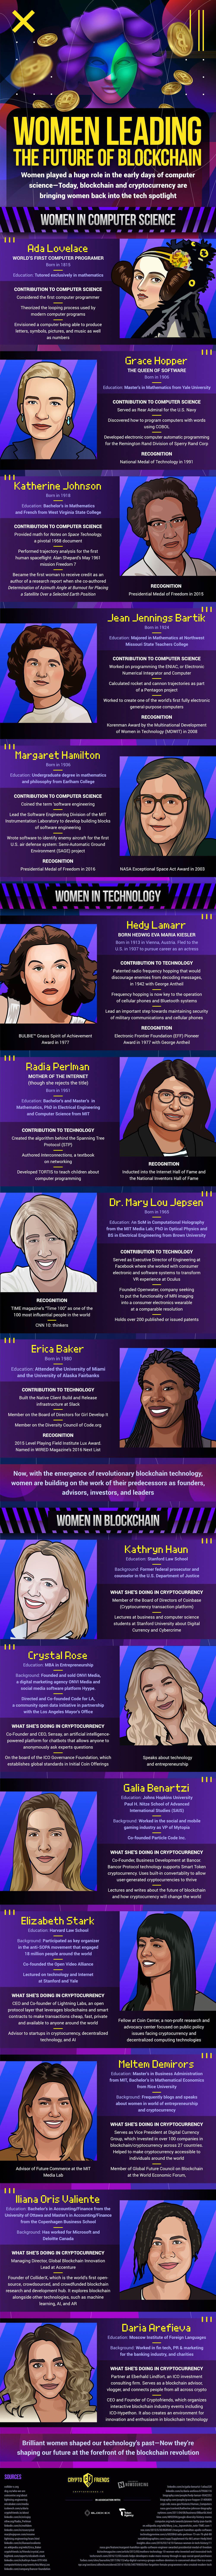 Women Who Lead: Inspirational Case Studies of Women at the Forefront of Technology - Infographic